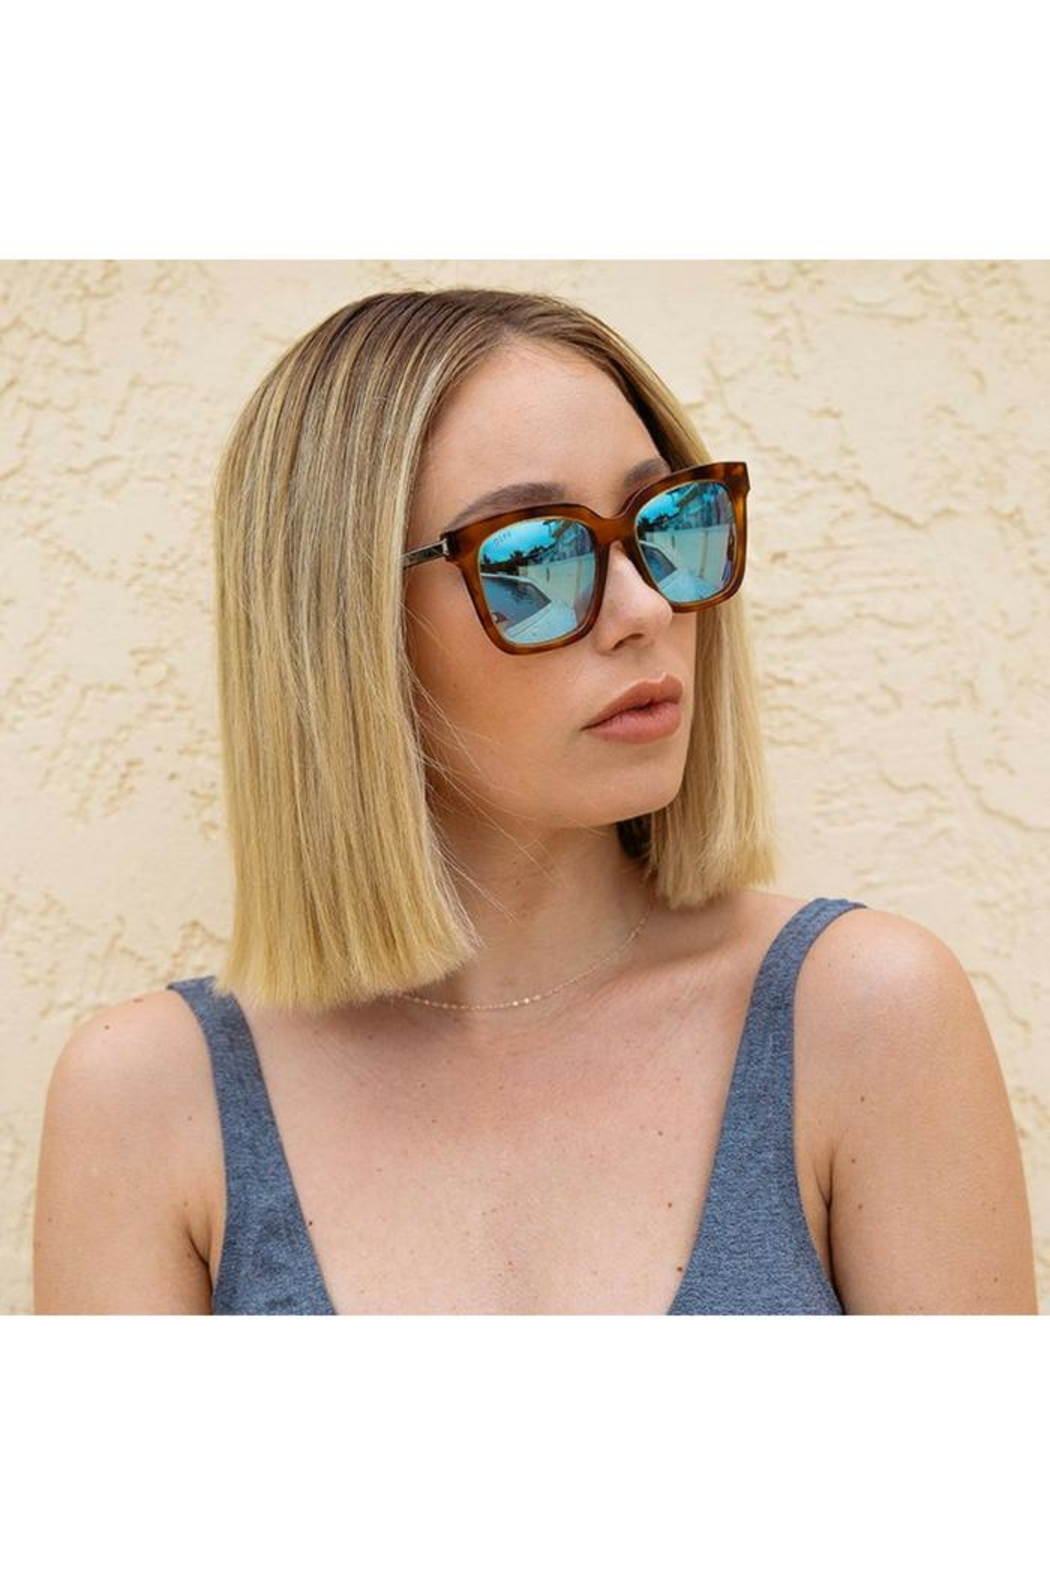 d8dc69a567 Diff Eyewear Bella Square Sunglasses from Wallingford by The ...